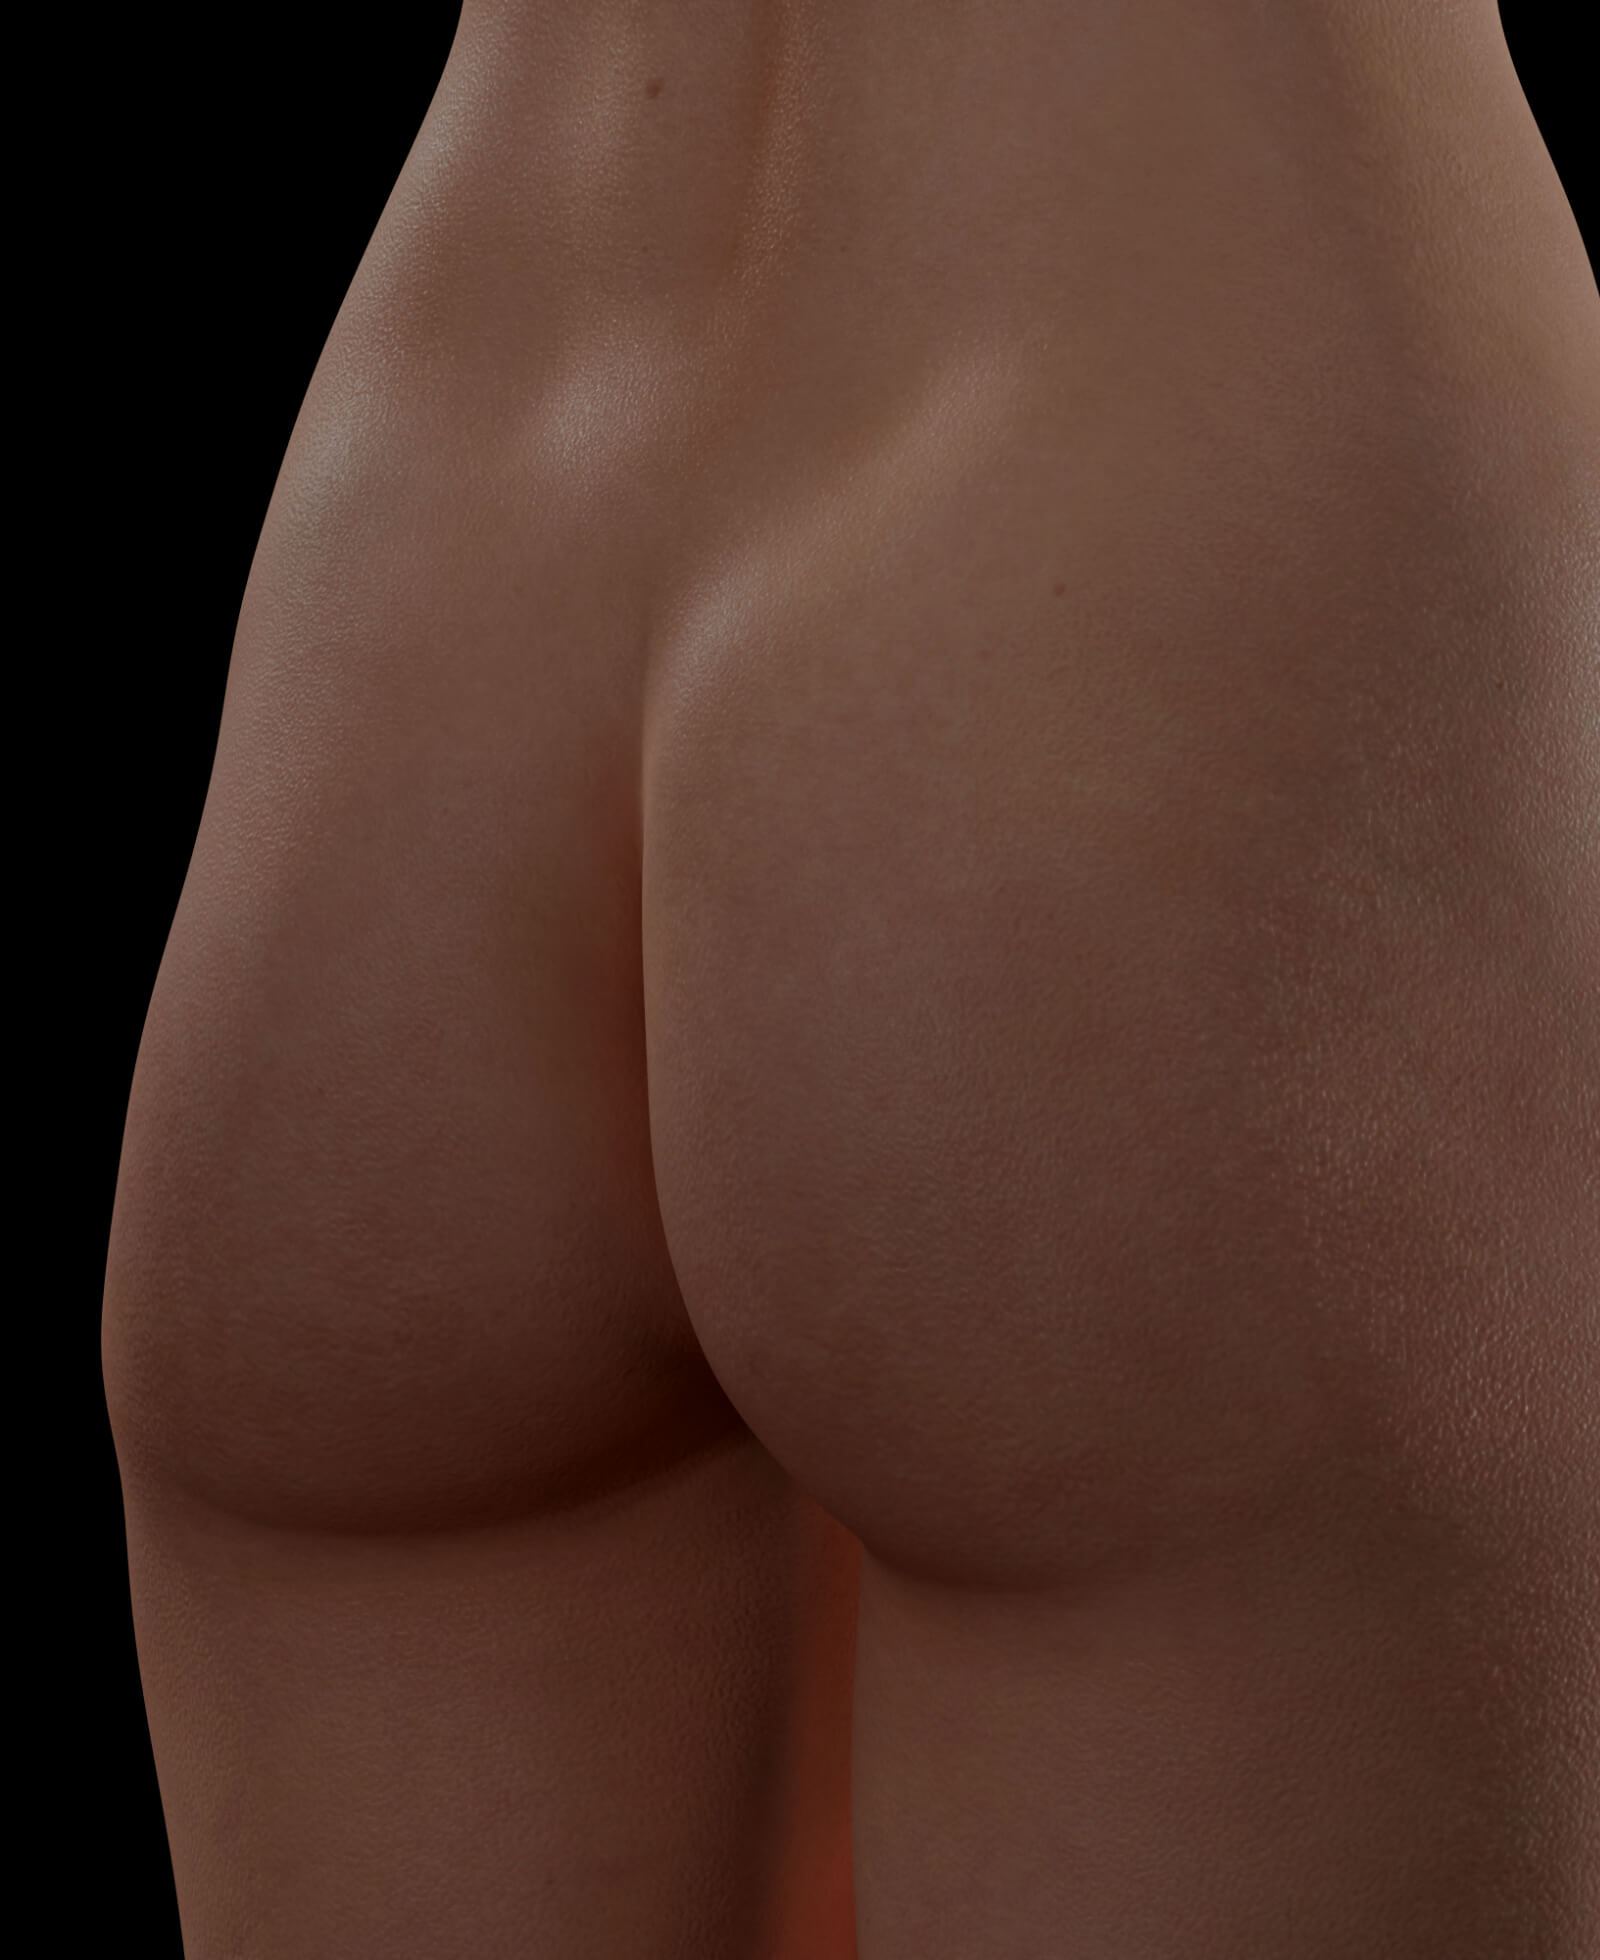 Buttocks of a Clinique Chloé female patient looking for a butt lift